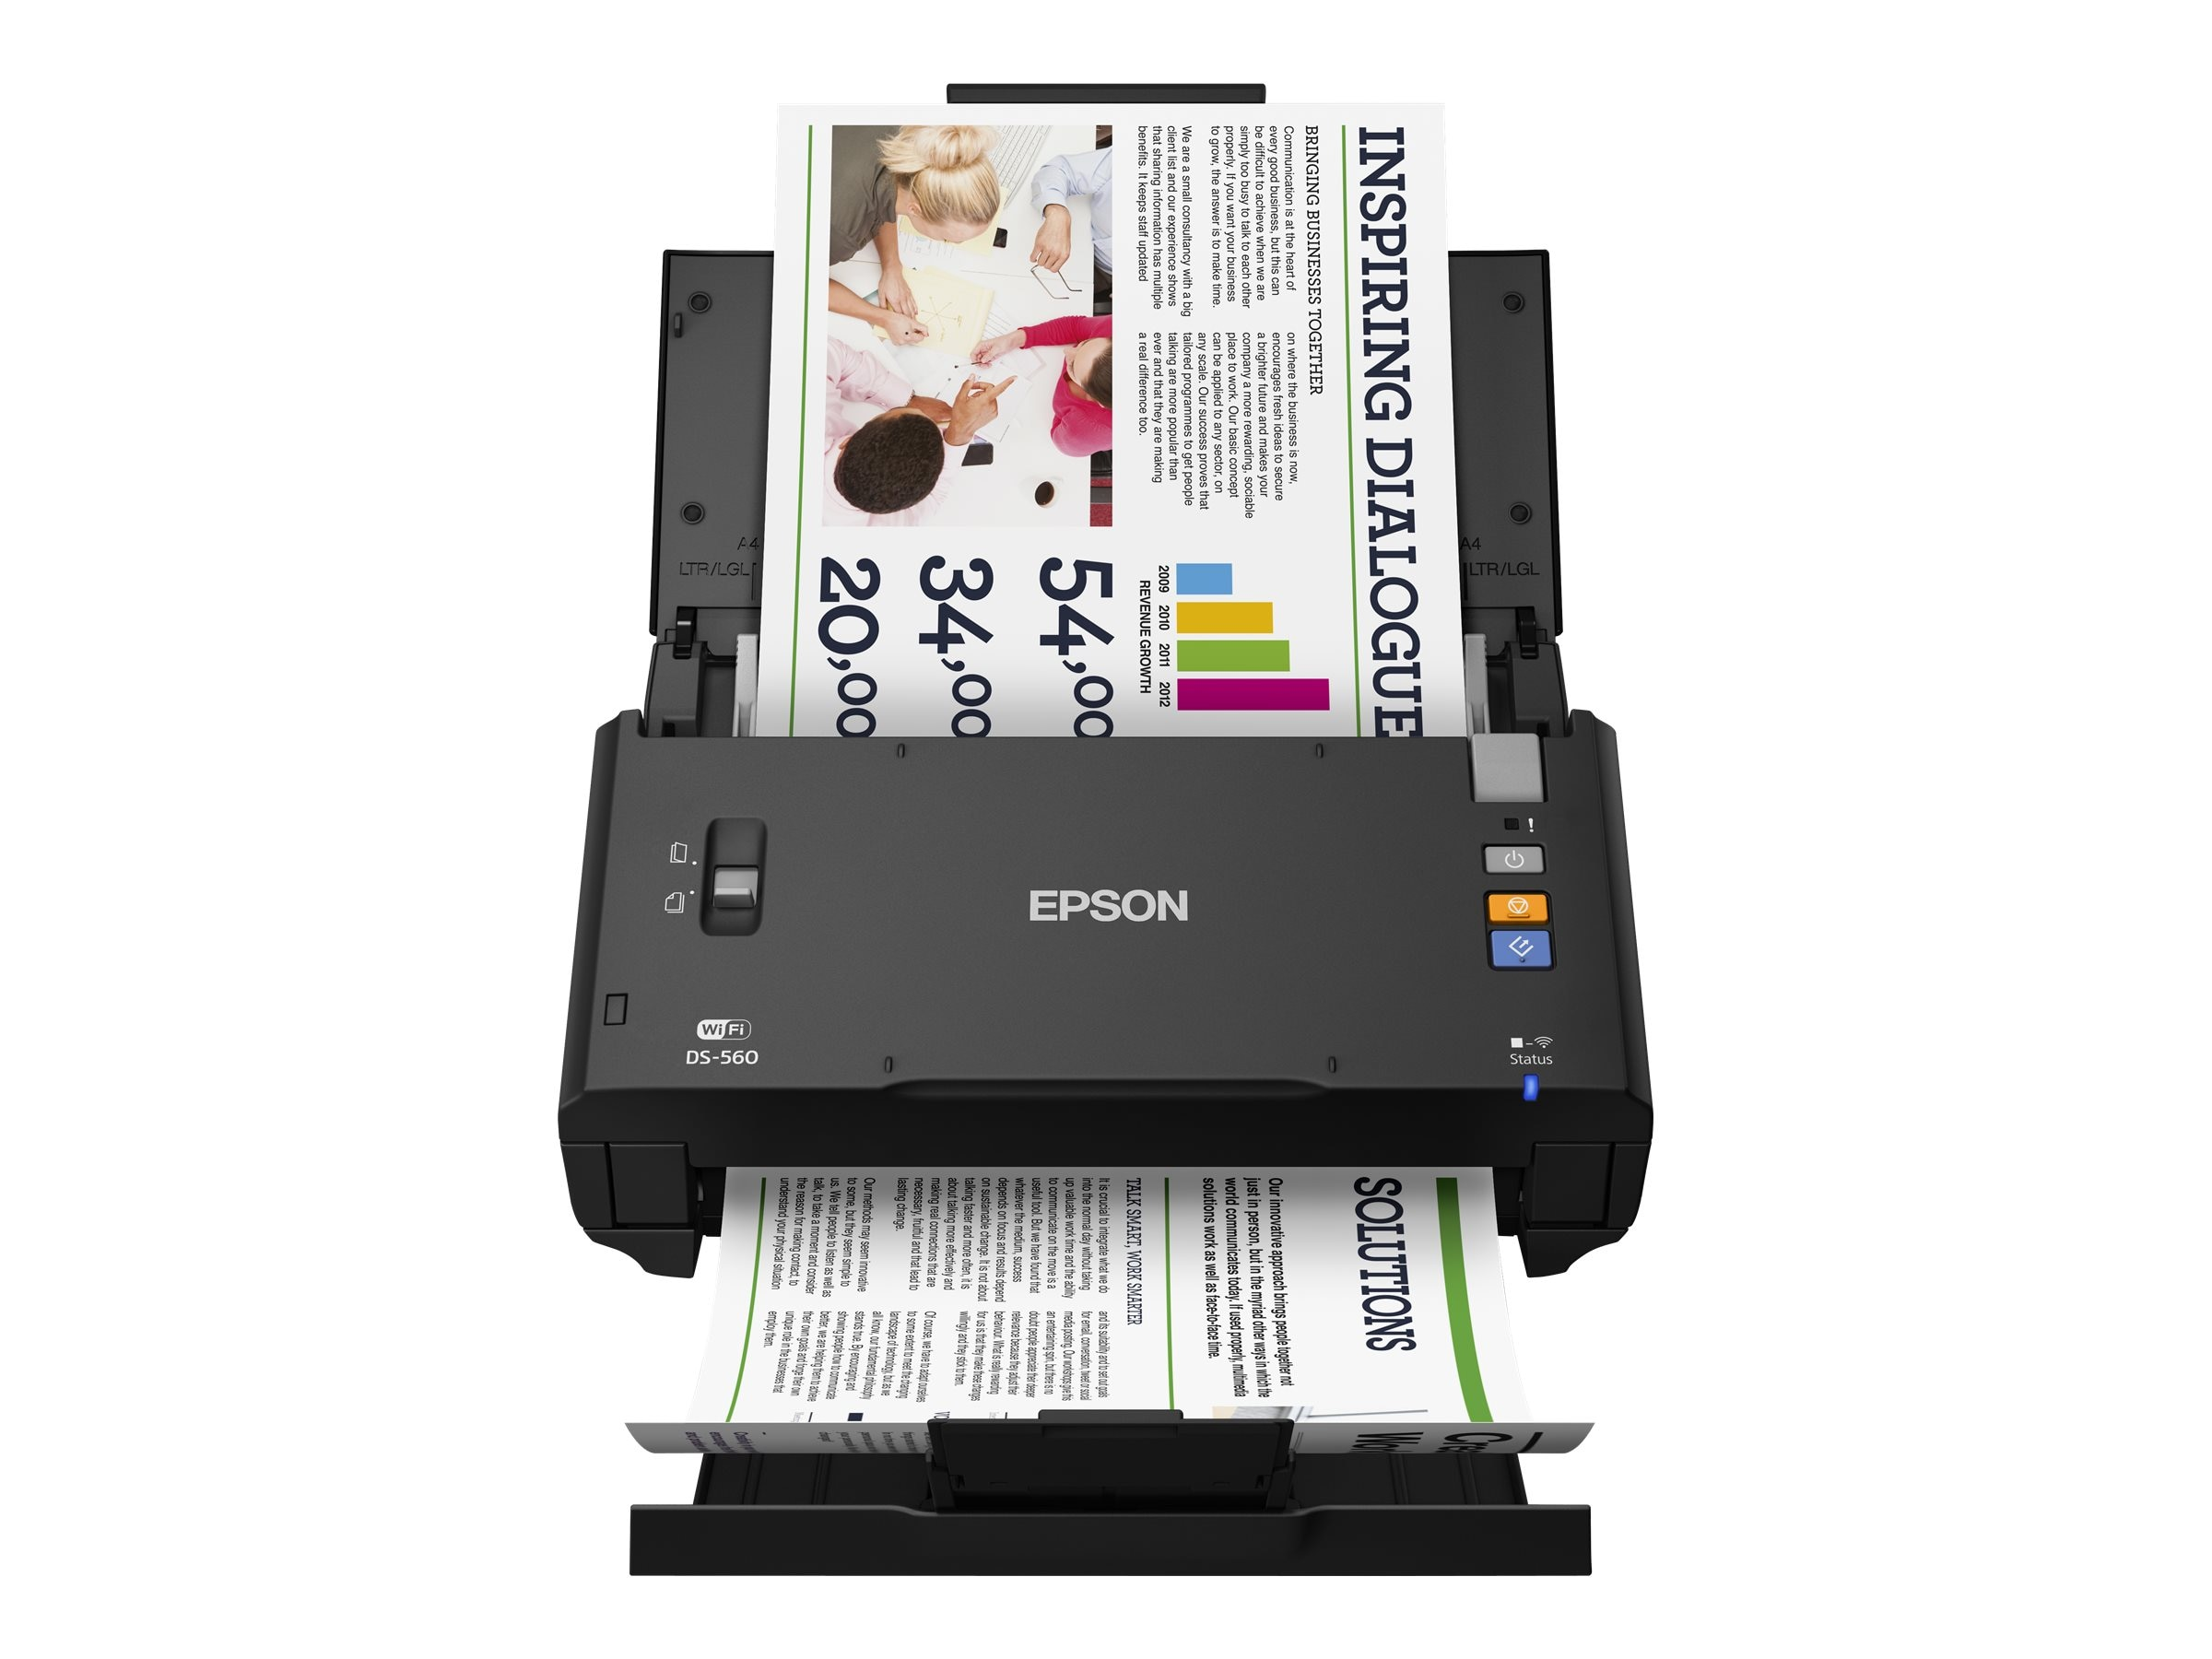 Epson WorkForce DS-560 26ppm 50-page ADF Wireless Scanner, B11B221201